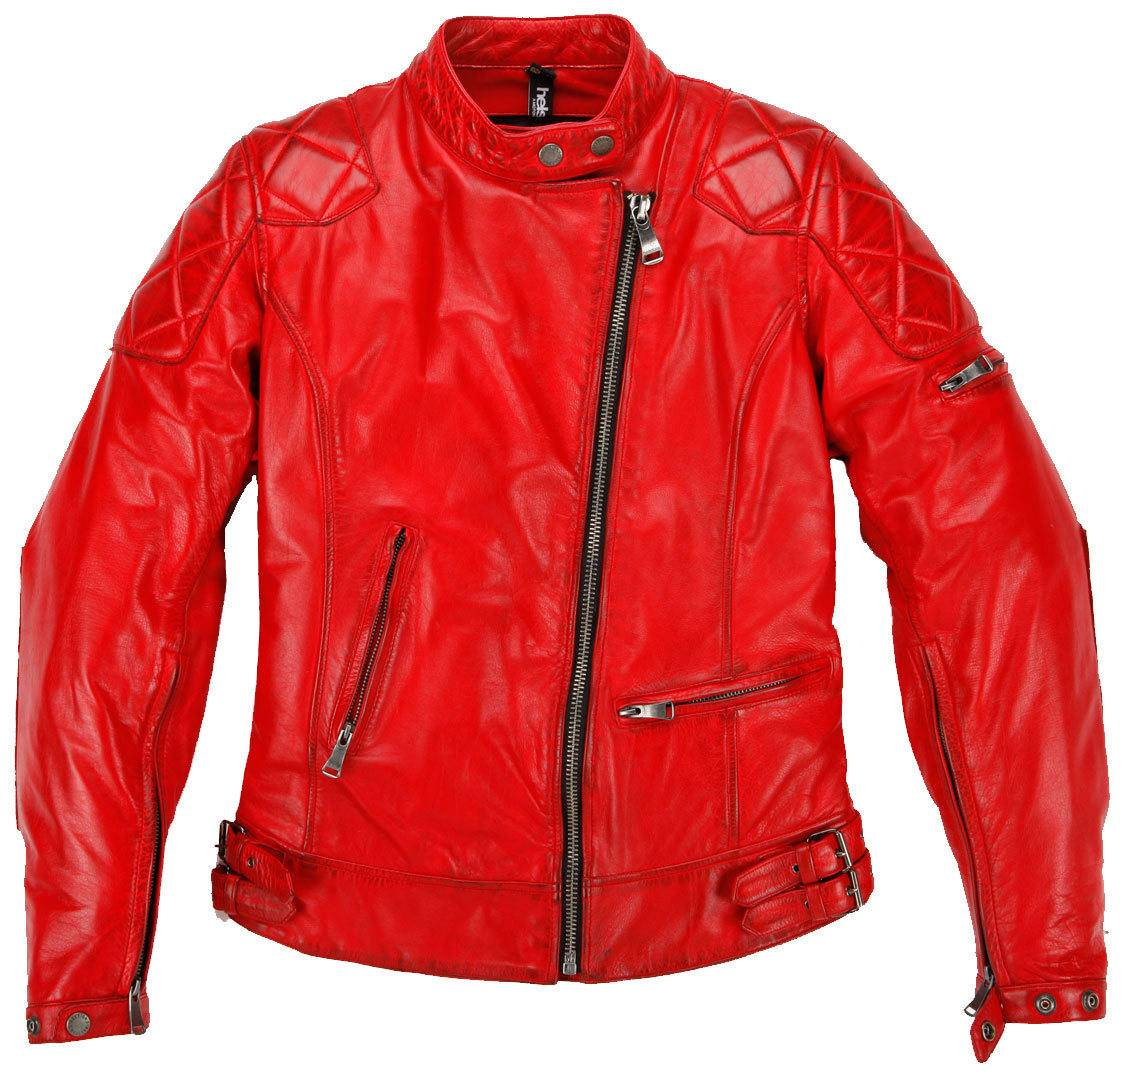 Helstons KS70 Giacca in pelle da donna Rosso XL